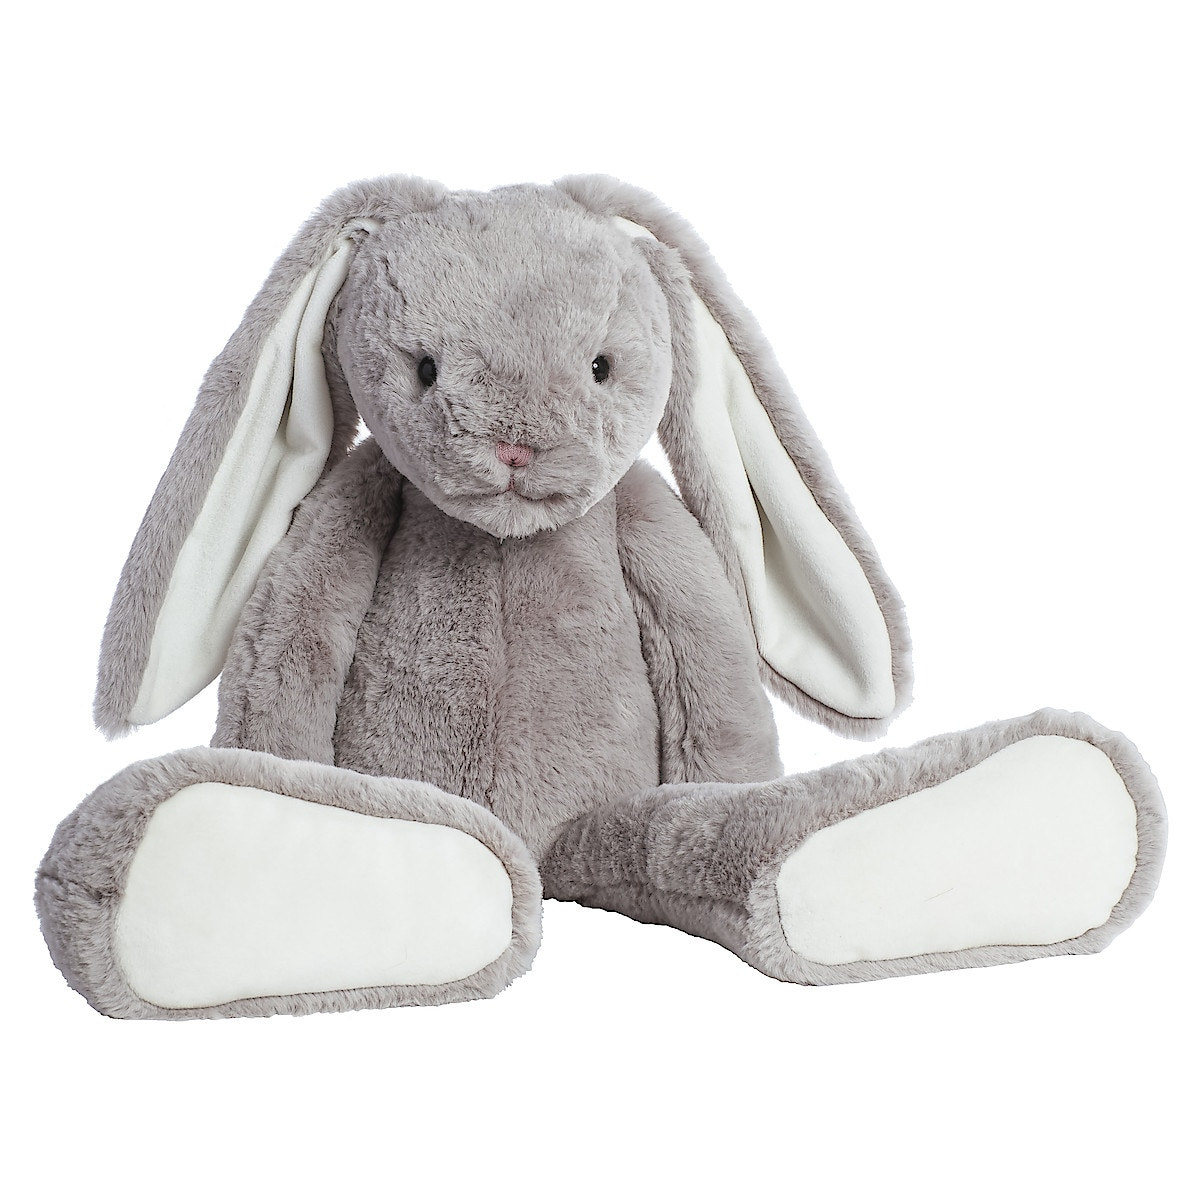 Cuddly Toy Rabbit